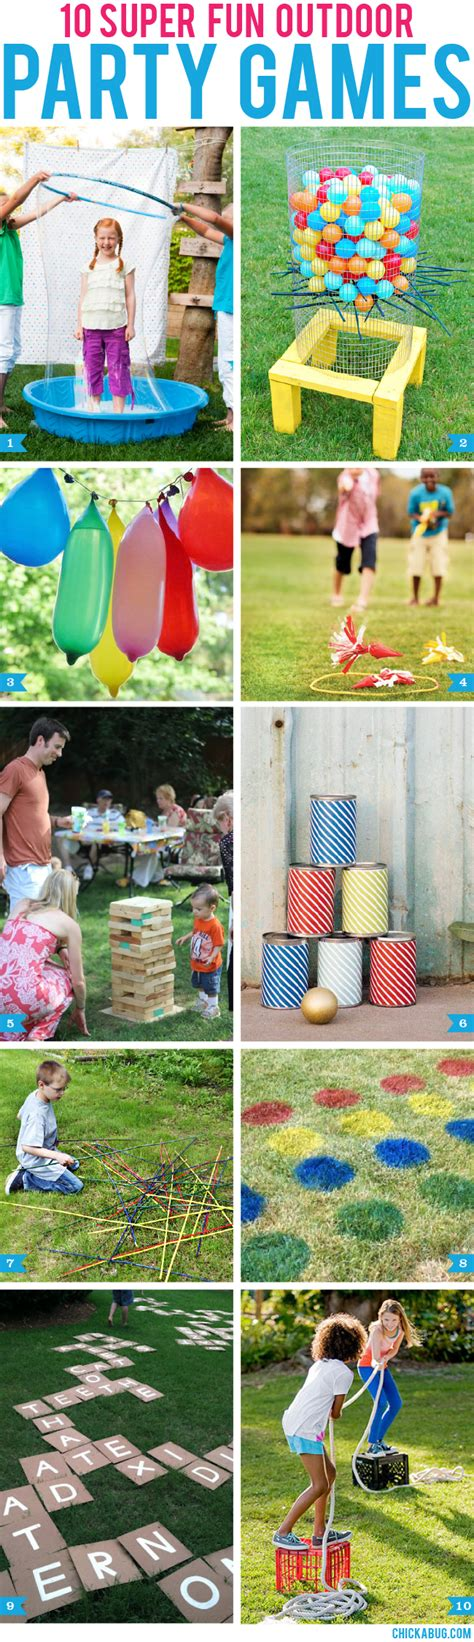 fun summer party ideas 10 super fun outdoor party games chickabug